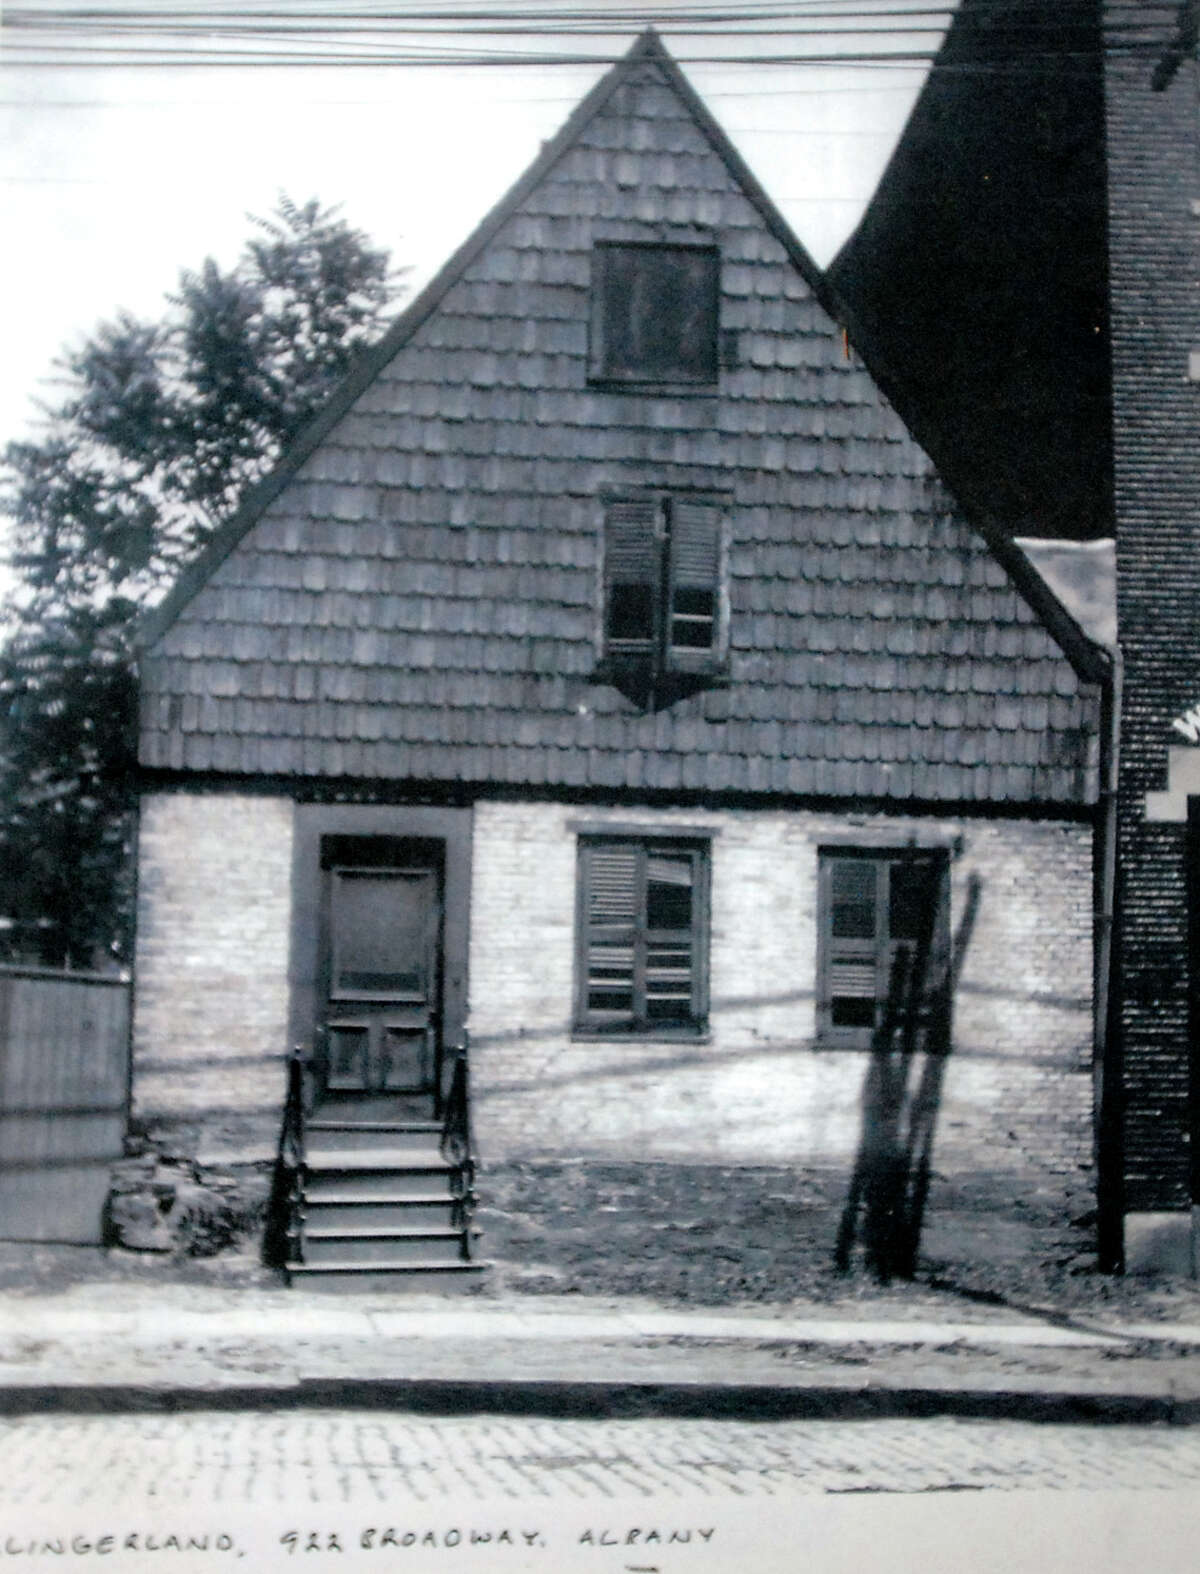 Copy of a photo on display inside 48 Hudson Ave. in 2008 in Albany, N.Y. The photo resembles the Van Ostrande-Radliff House, a Dutch-style home built around 1720 that is one of the oldest homes in the Capital Region. (Cindy Schultz / Times Union archive)